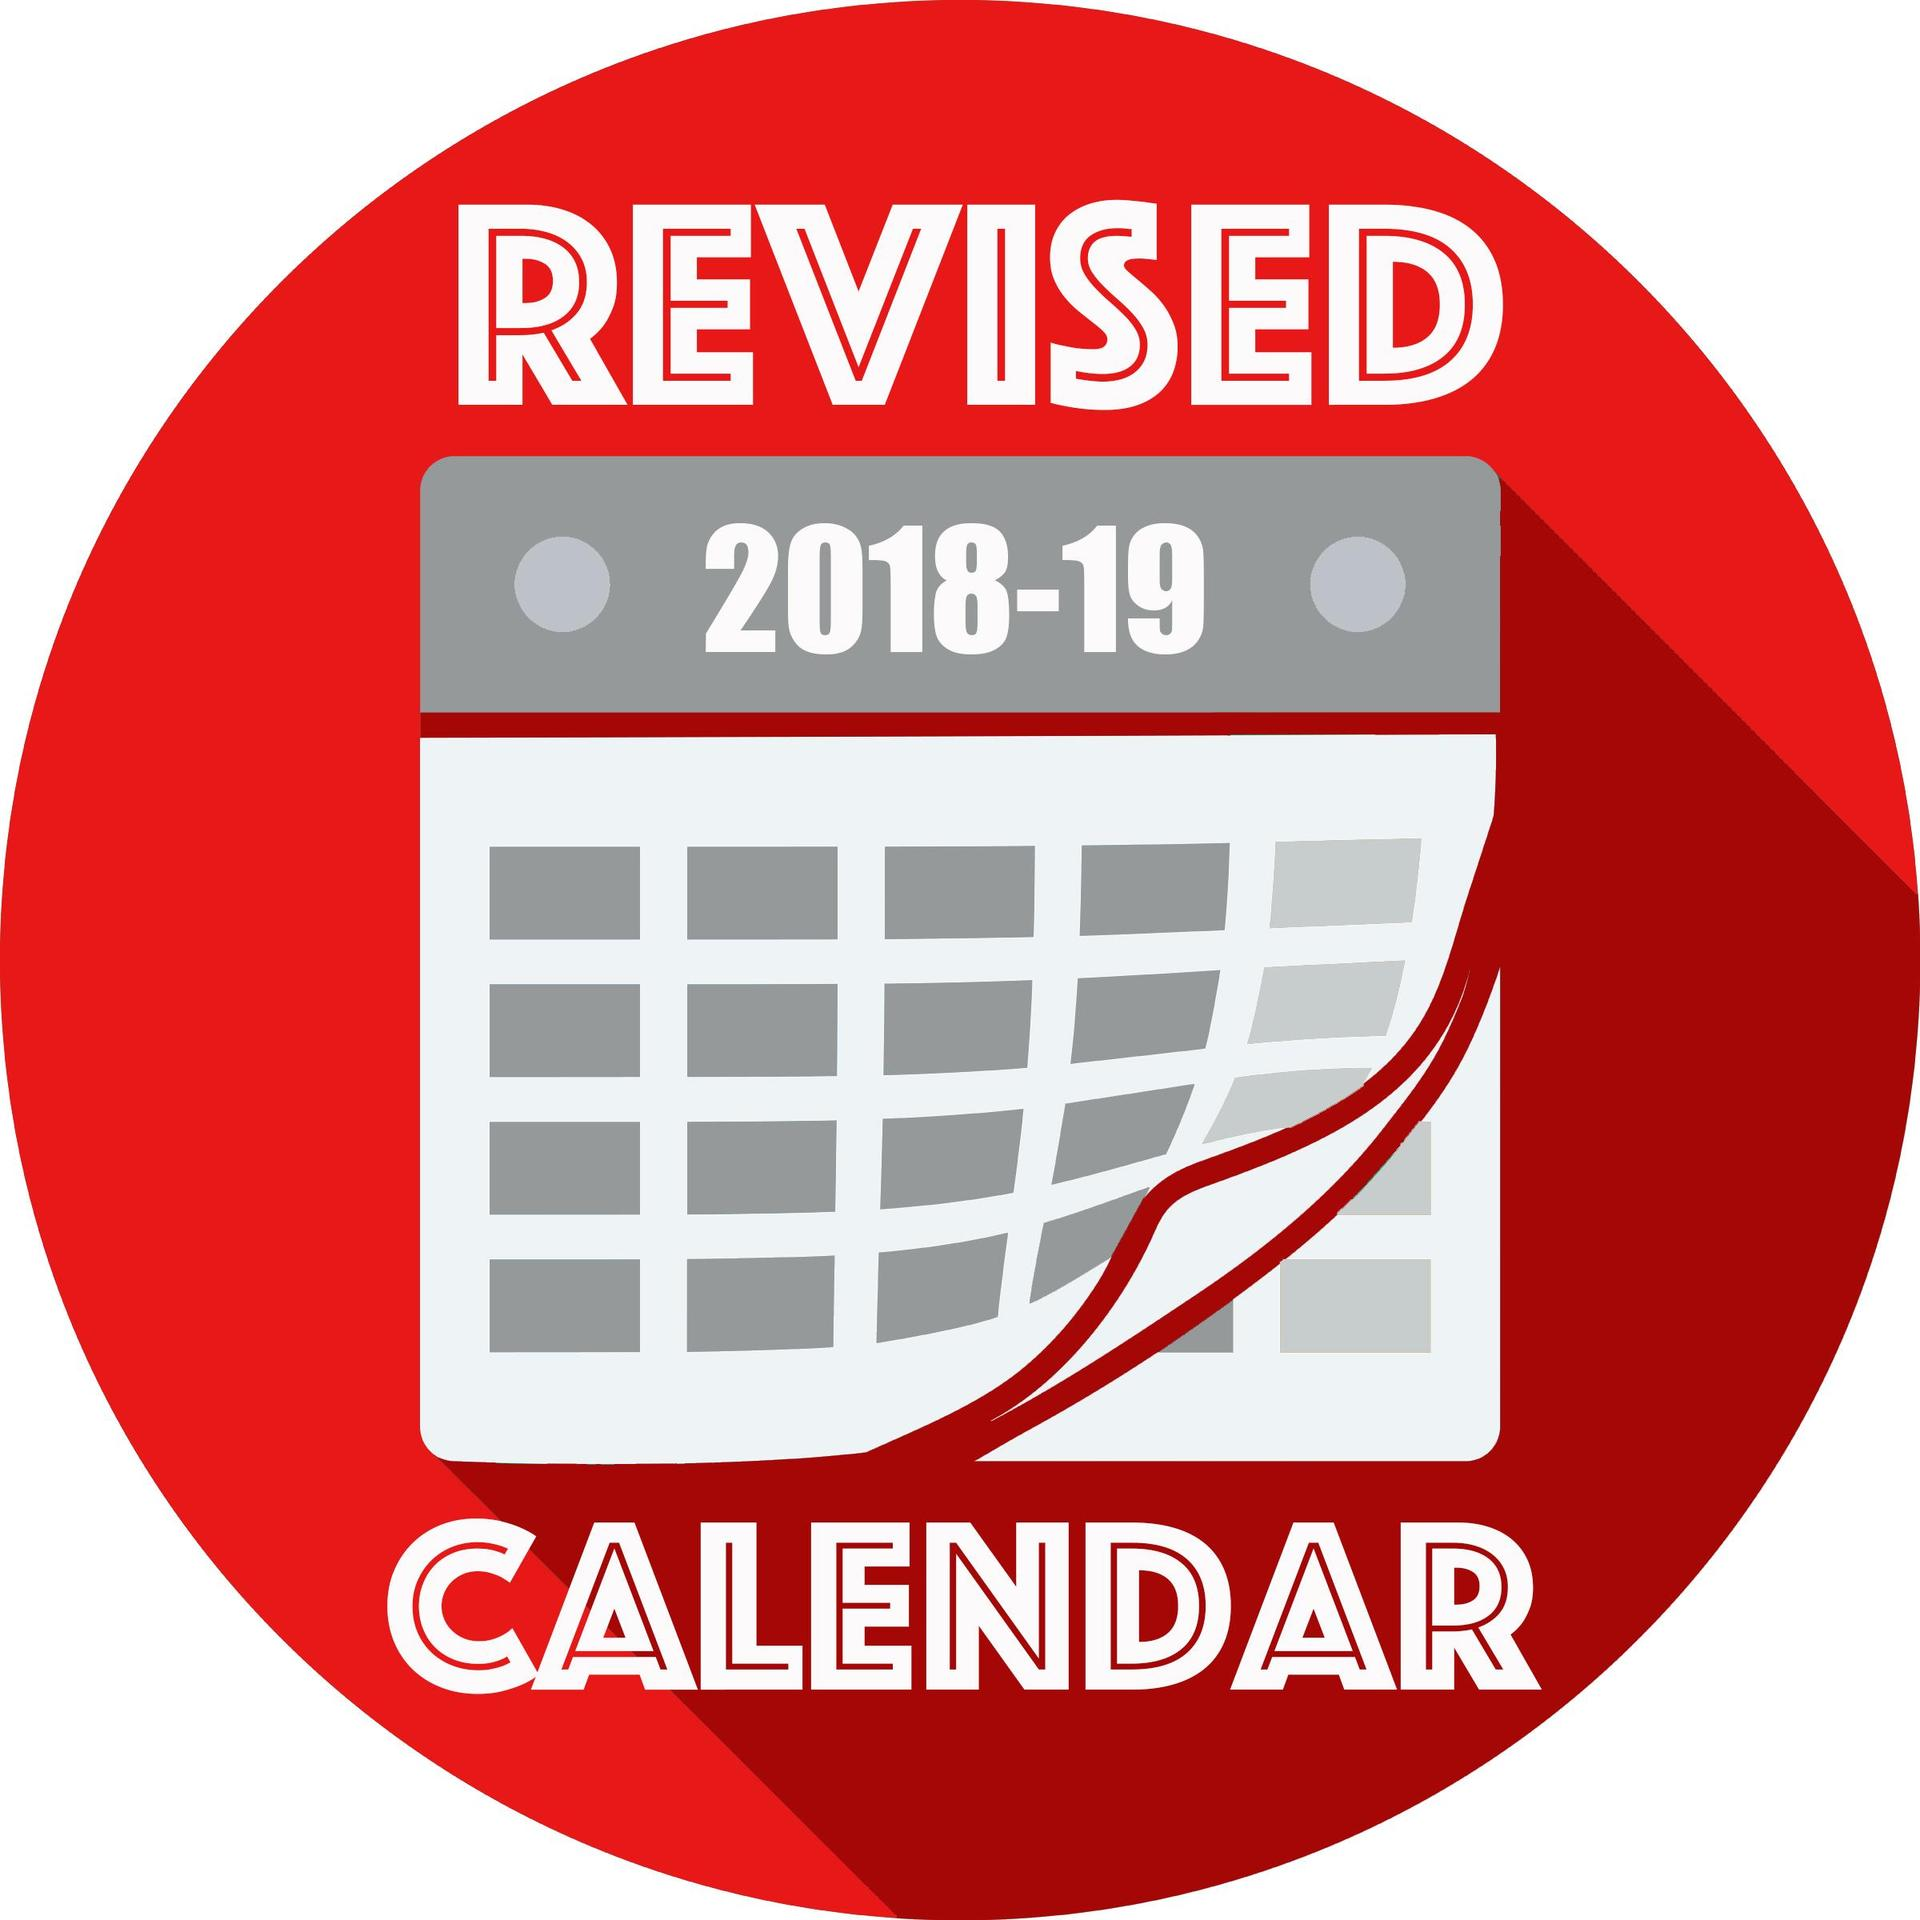 Revised calendar icon